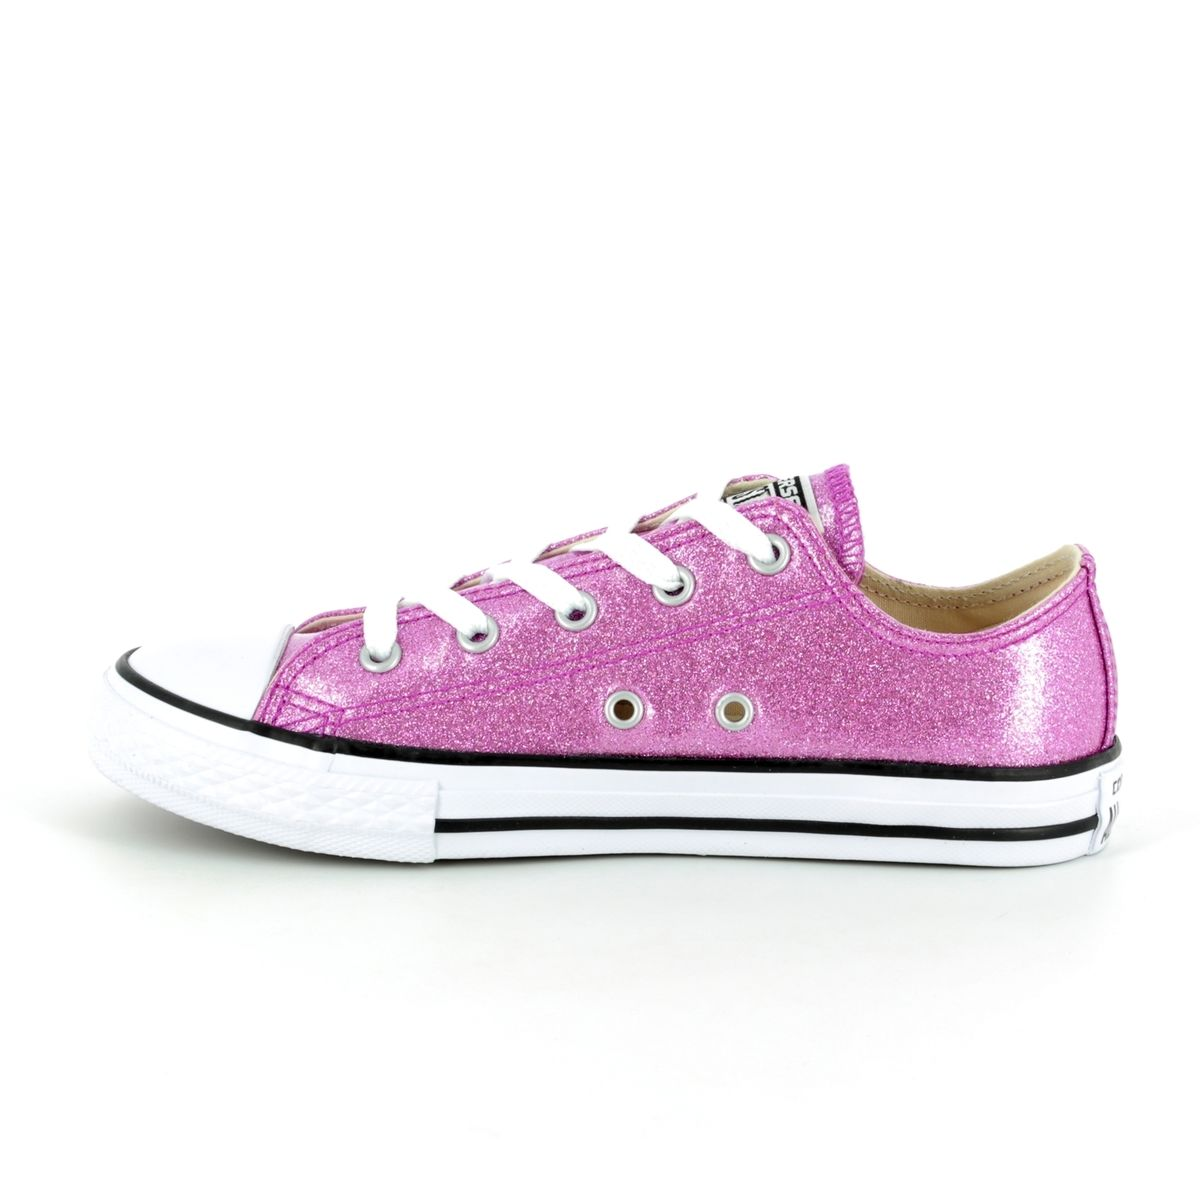 edabf82e152d Converse All Star Ox Jnr 660047C Pink Glitter Lacing Trainers